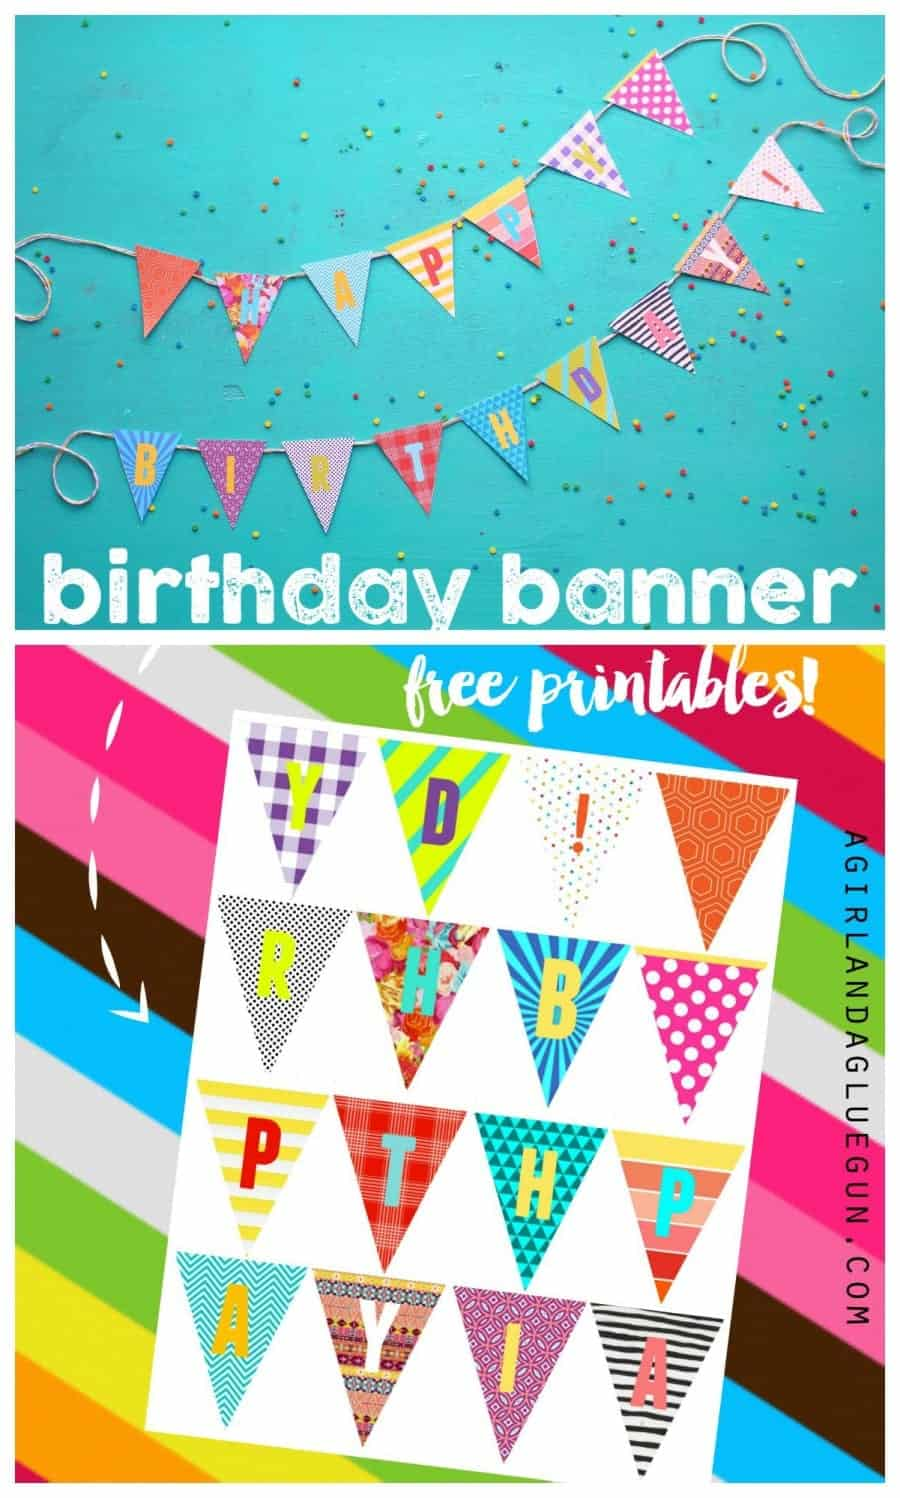 graphic relating to Free Birthday Banner Printable titled birthday banner printables - A woman and a glue gun